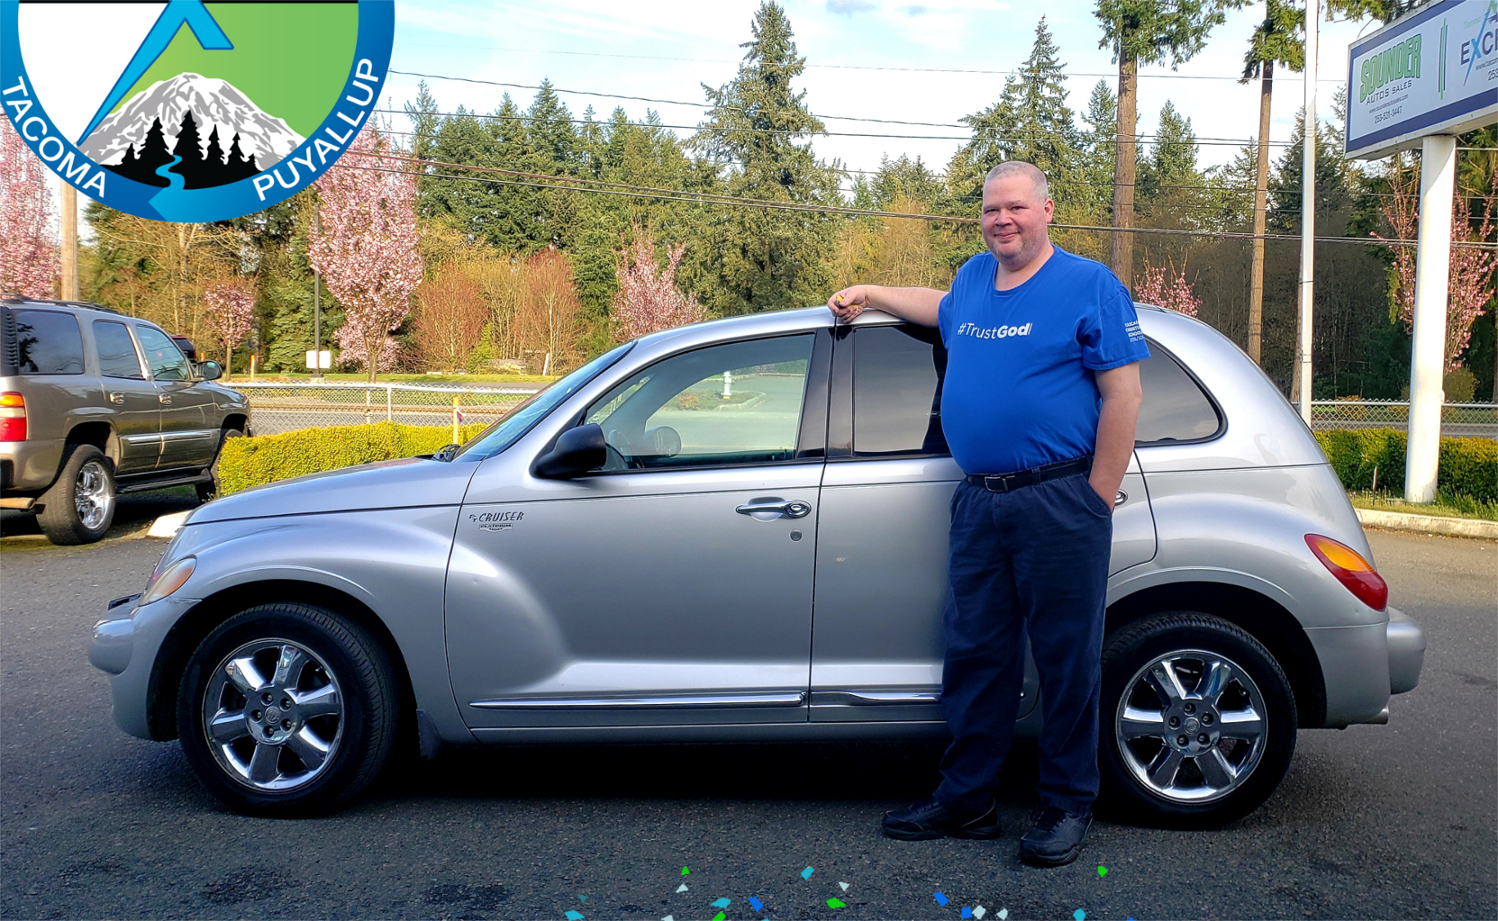 pt cruiser joe patterson testimonial scaled tacoma auto exchange tacoma auto exchange